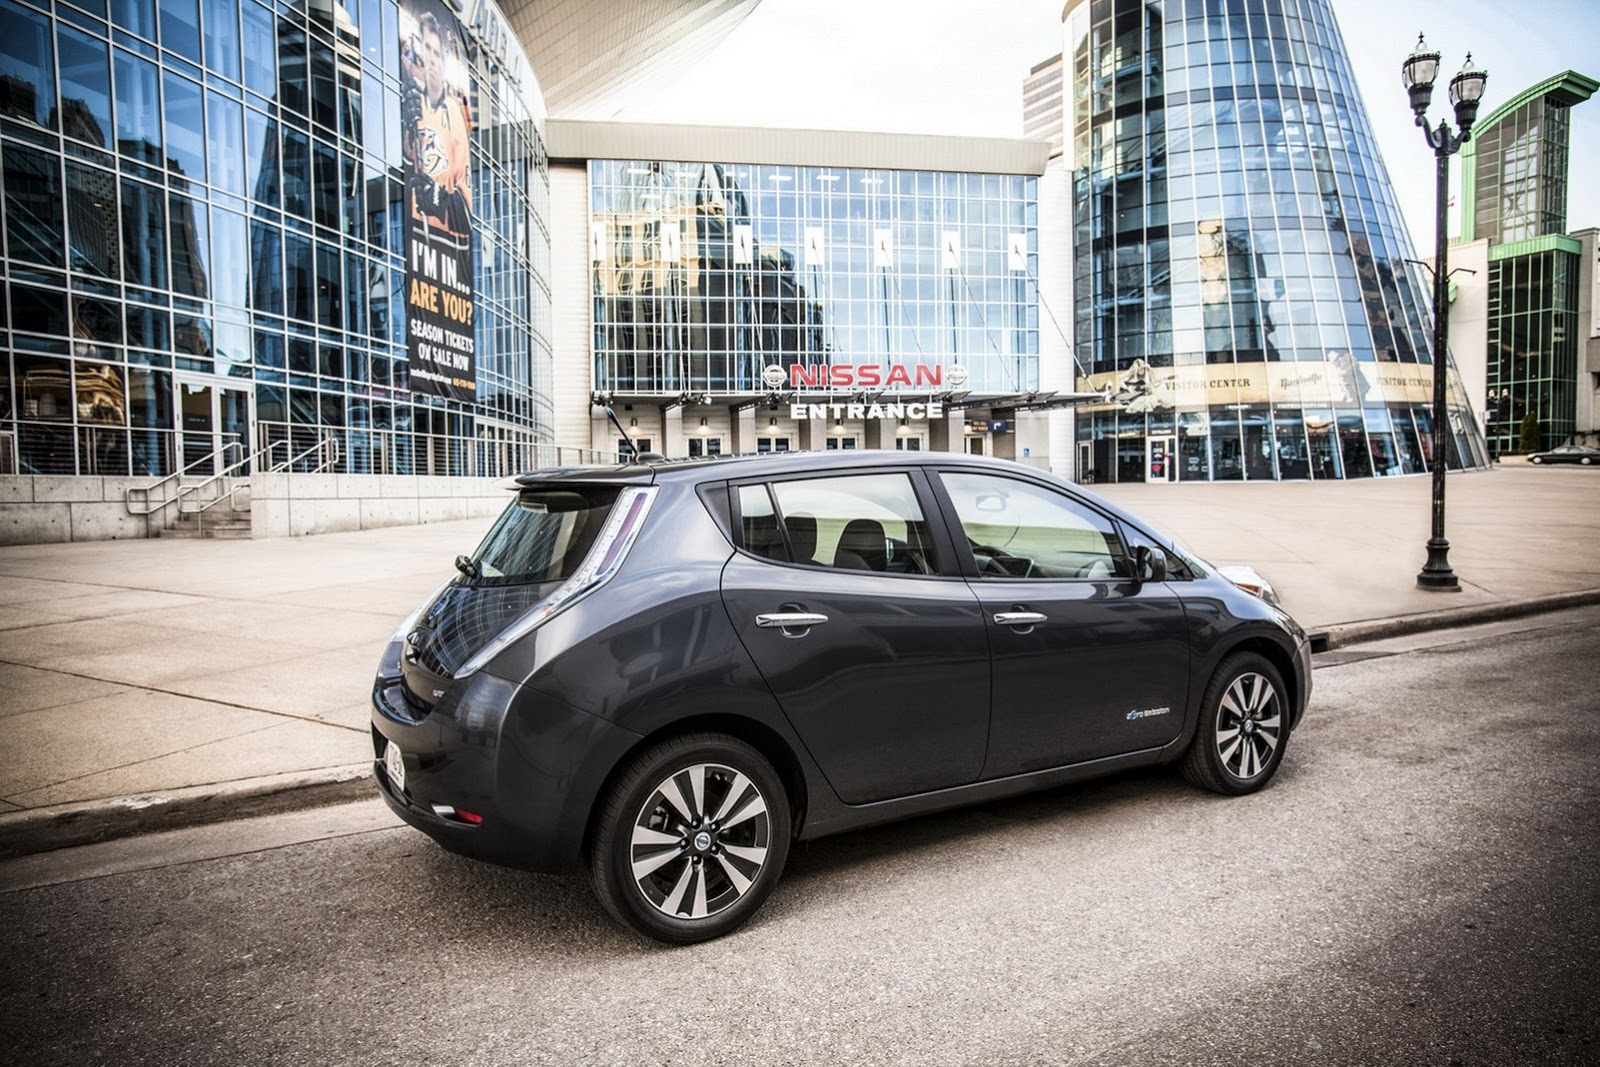 Nissan sold 25,000 Leaf units in the US, they celebrate